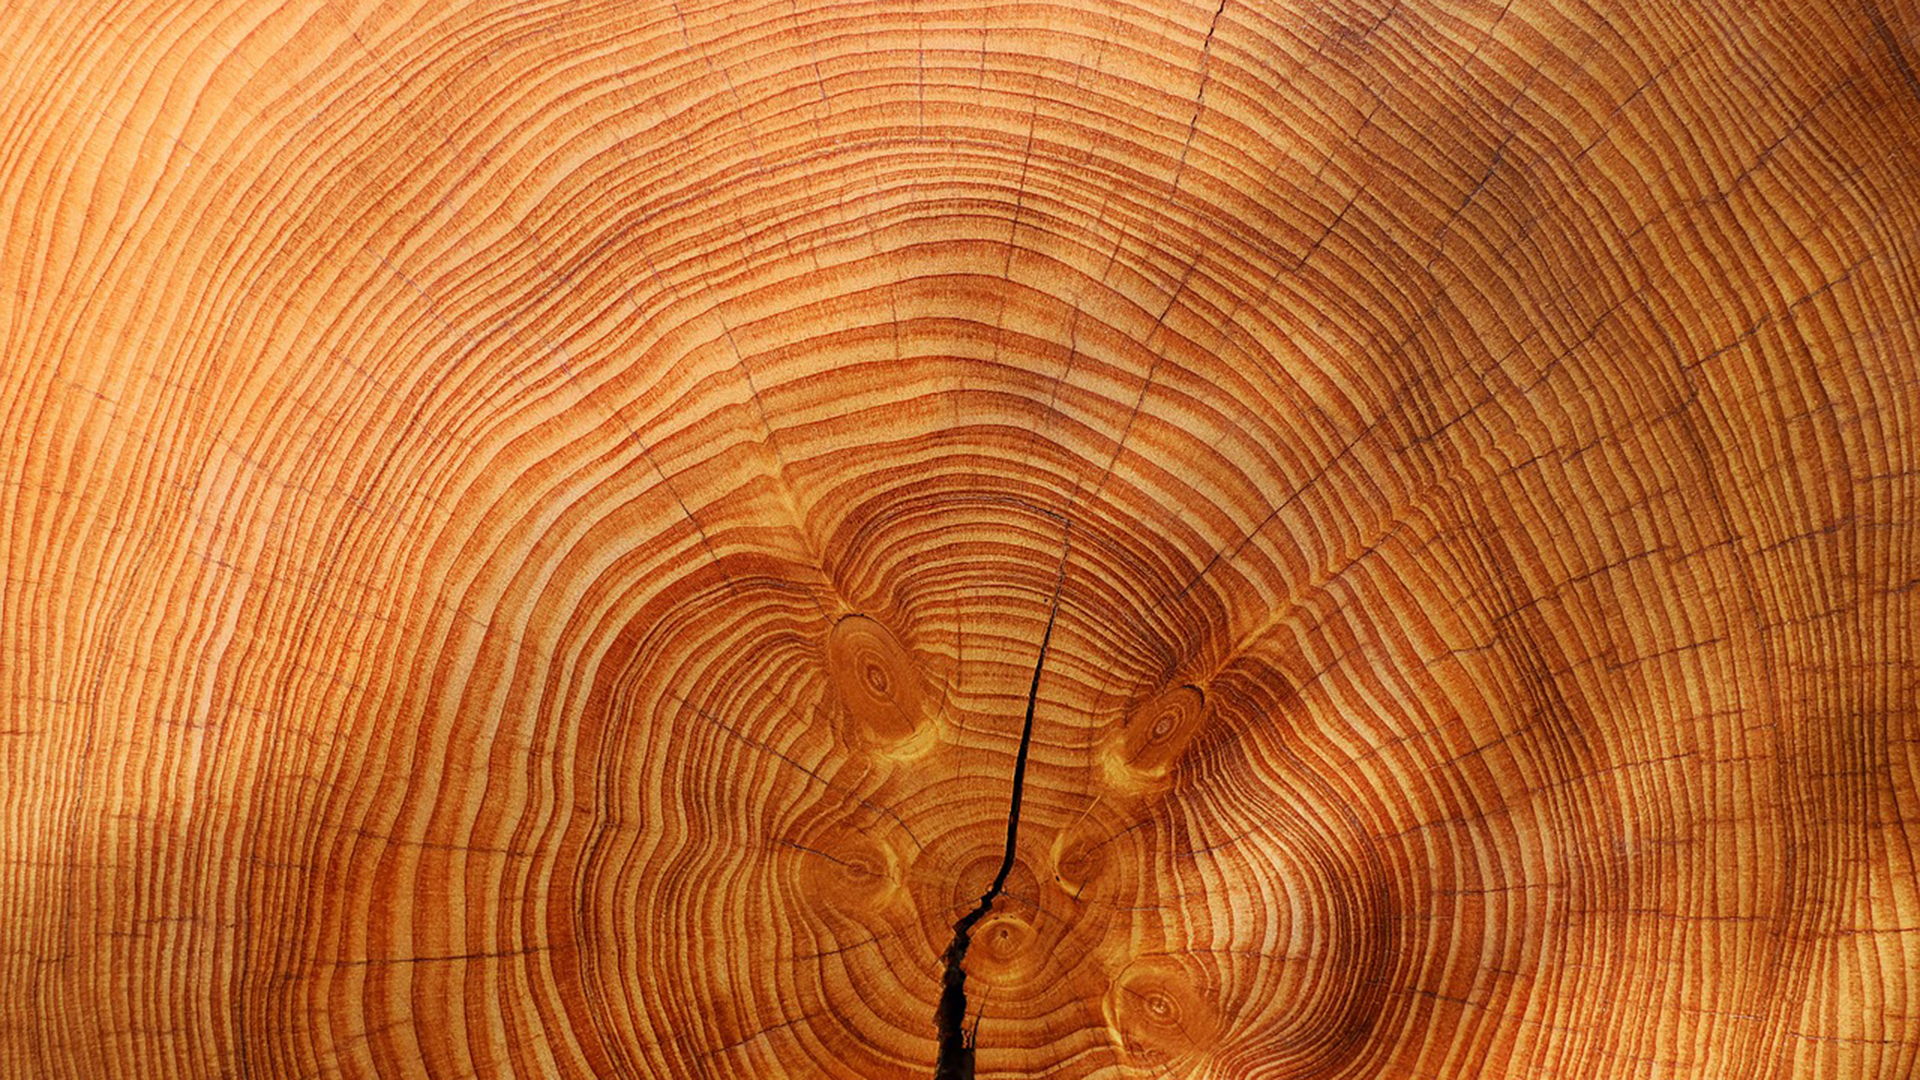 Studying tree rings helped UA researchers track the movement of the tropics over 800 years.